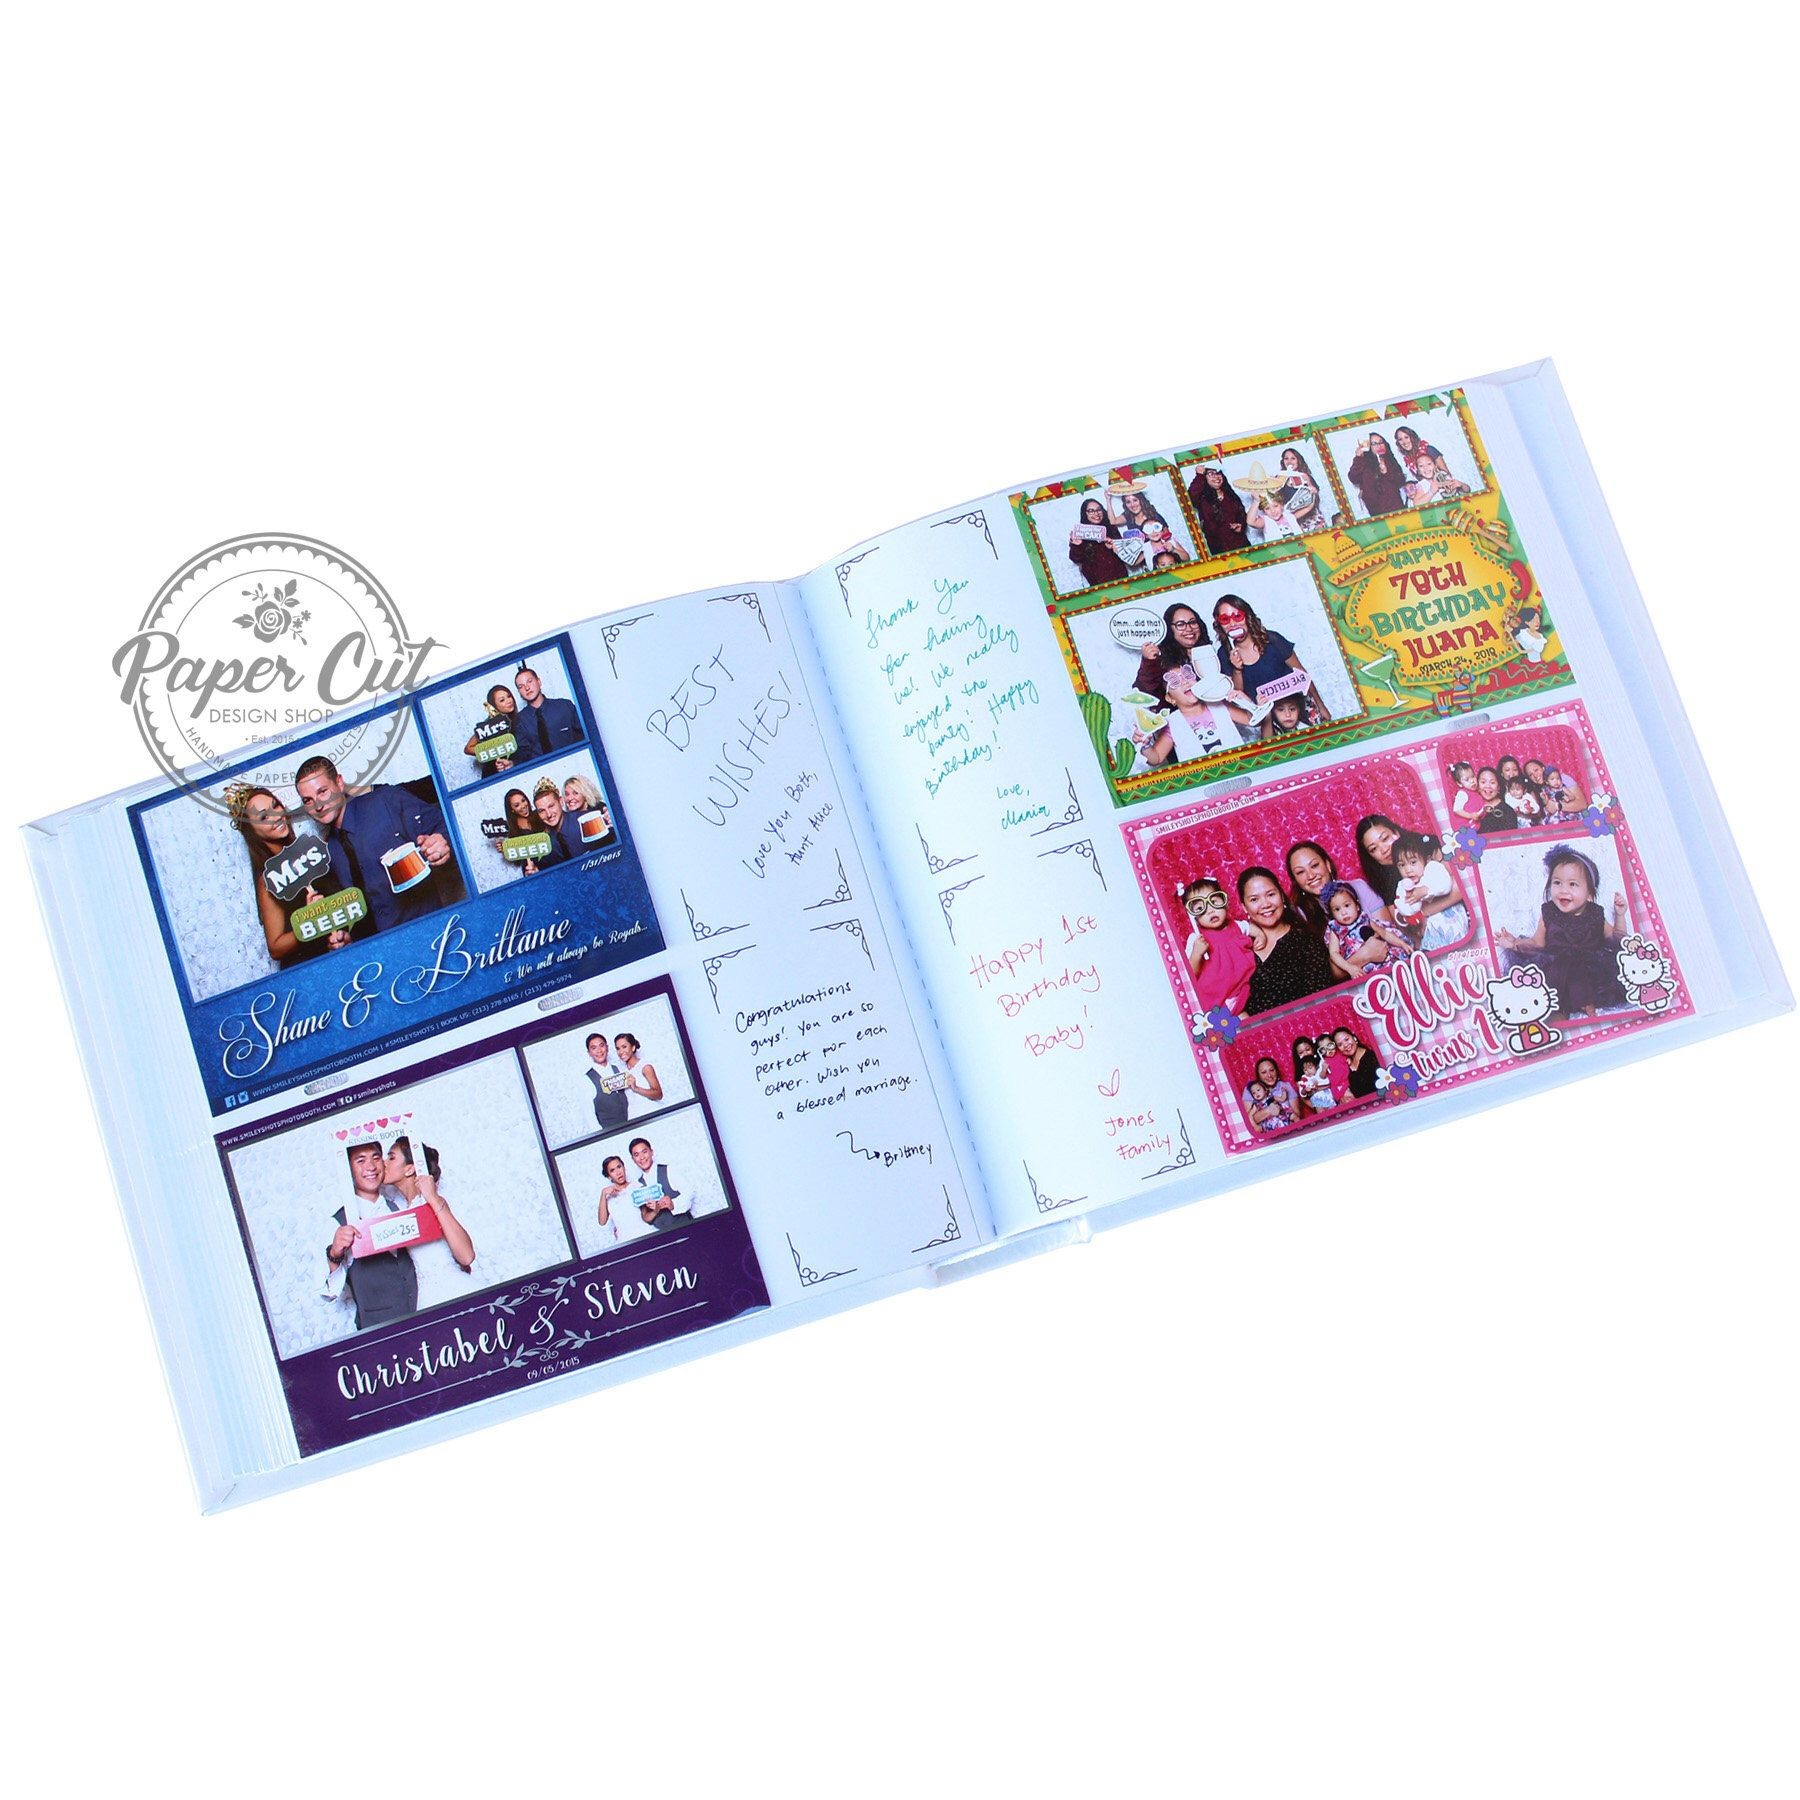 Photo Booth Guest Book Album Slipin BOX Included Wedding